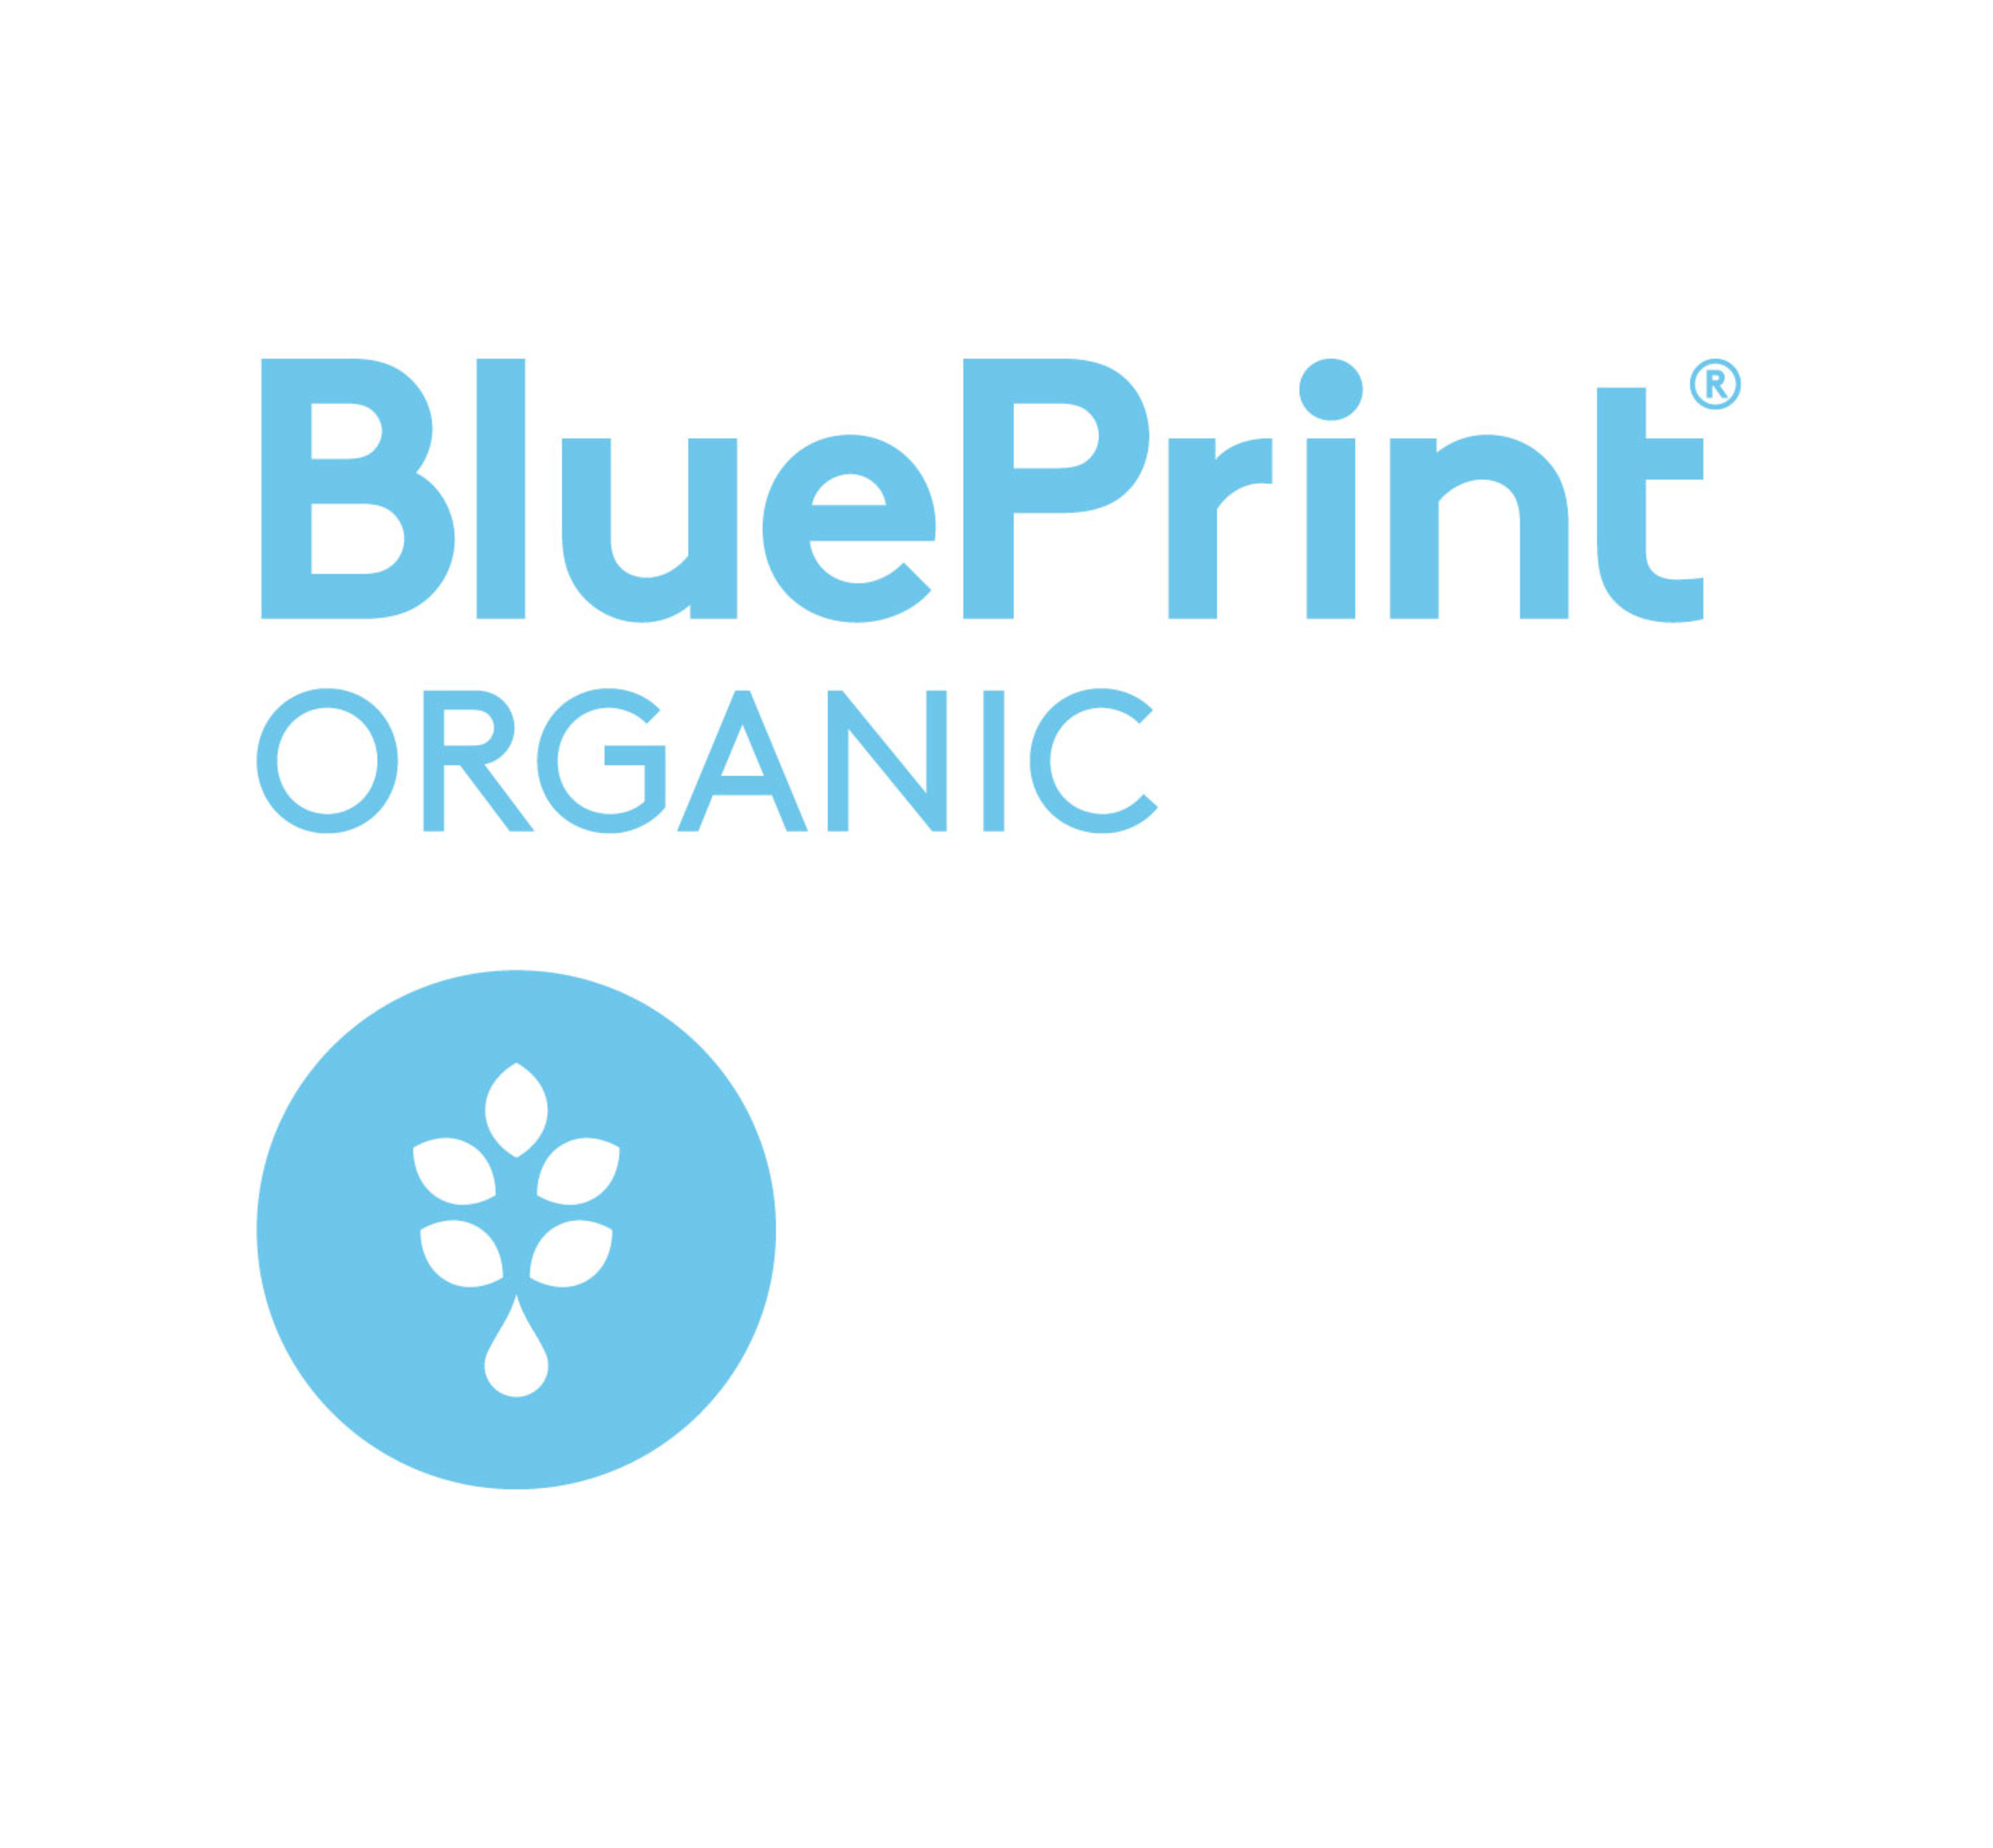 Blueprint organic expands beverage varieties with launch of blueprintr organic juice drinks logo malvernweather Choice Image